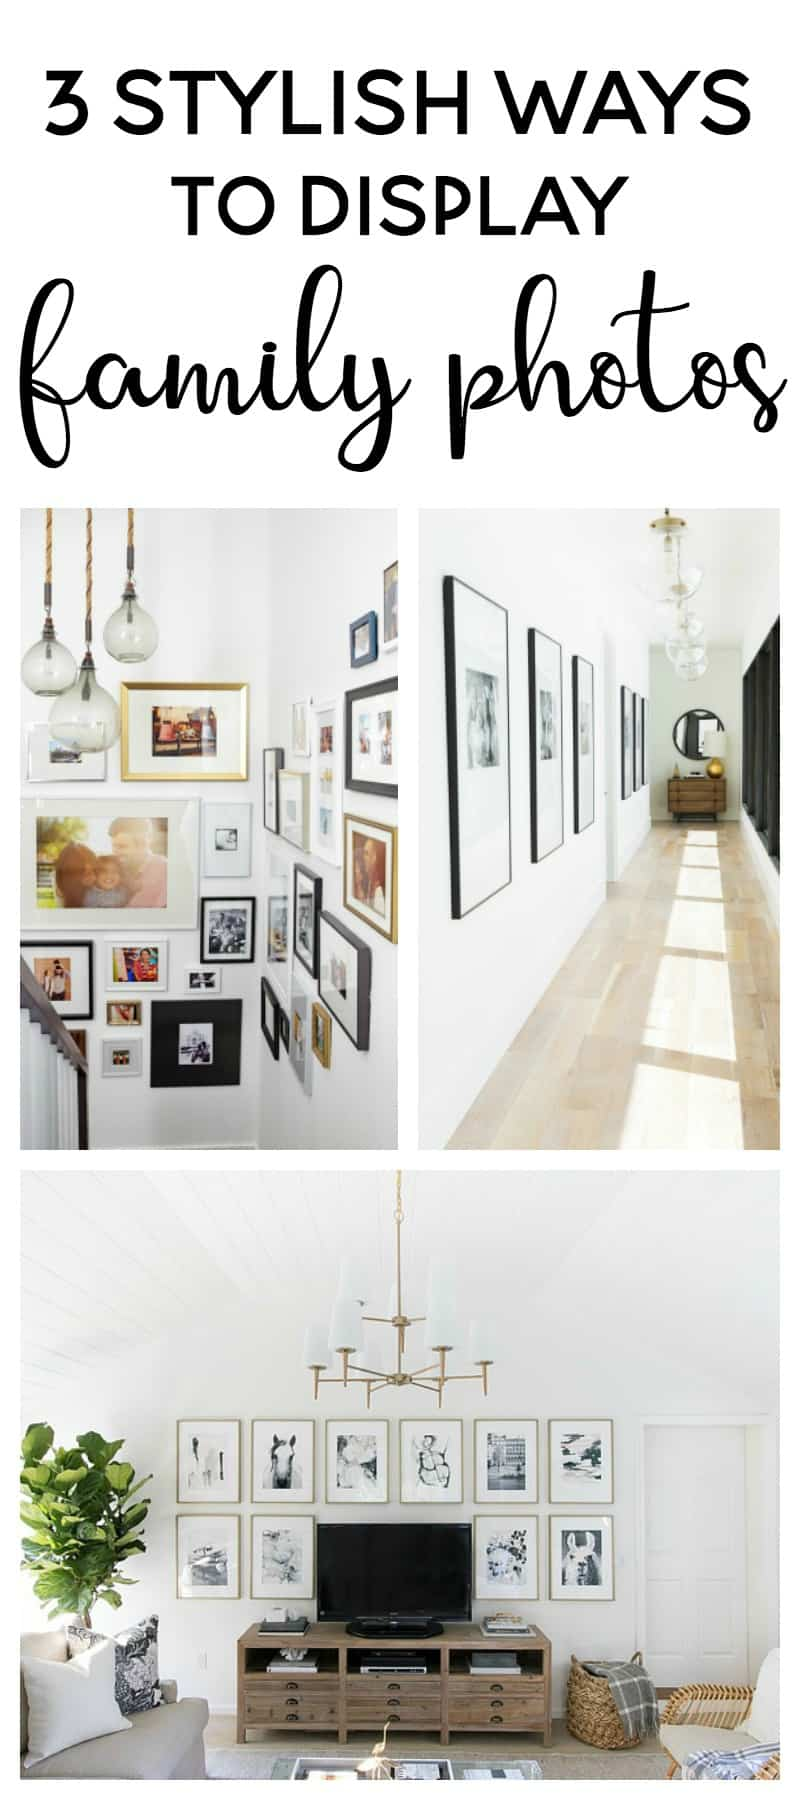 3 stylish ways to display family photos | gallery wall ideas | diy gallery wall | family picture ideas | home decor ideas | decorating | eclectic gallery wall | grid style gallery wall | oversized photos | engineer prints | gallery wall ideas